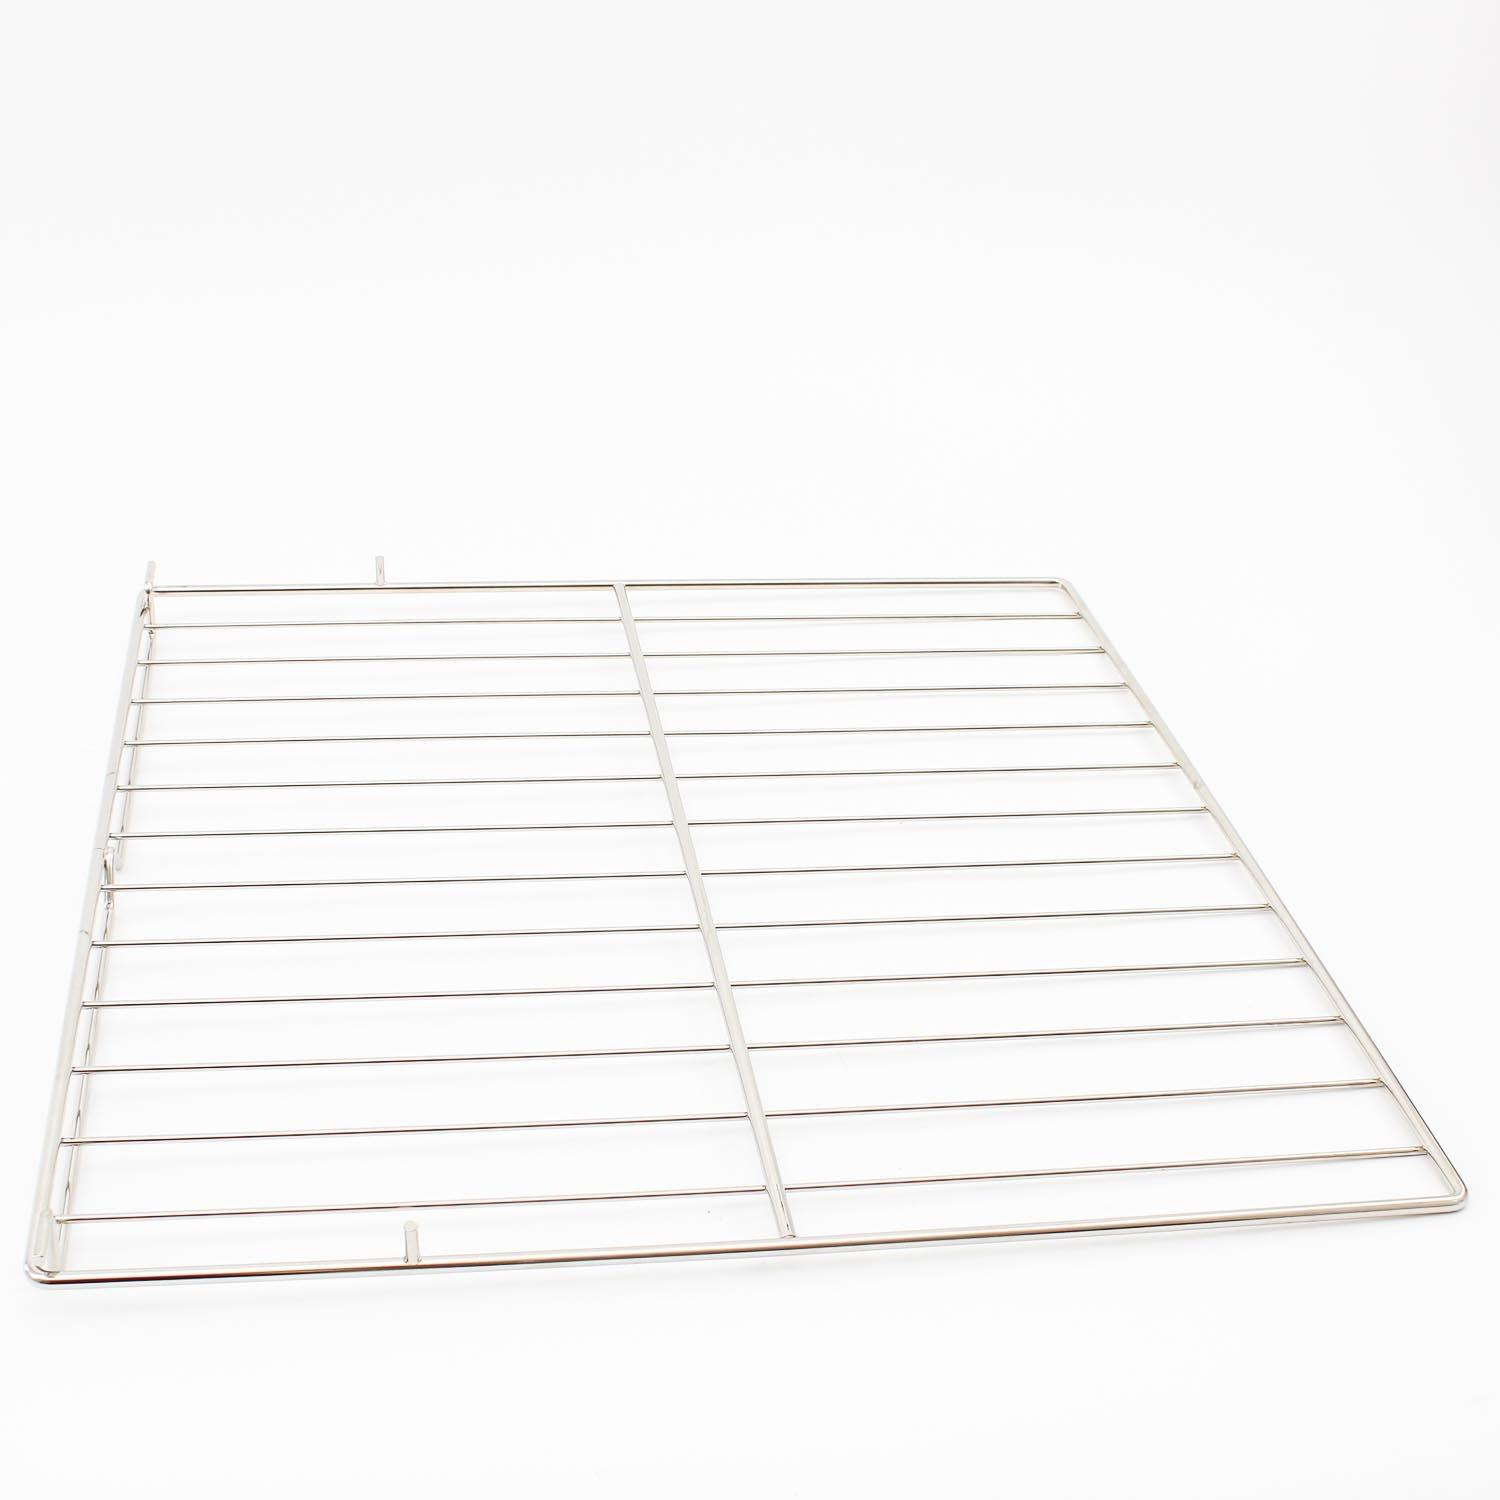 SOUTHBEND OVEN RACK 25 3/4 X 25 5/8